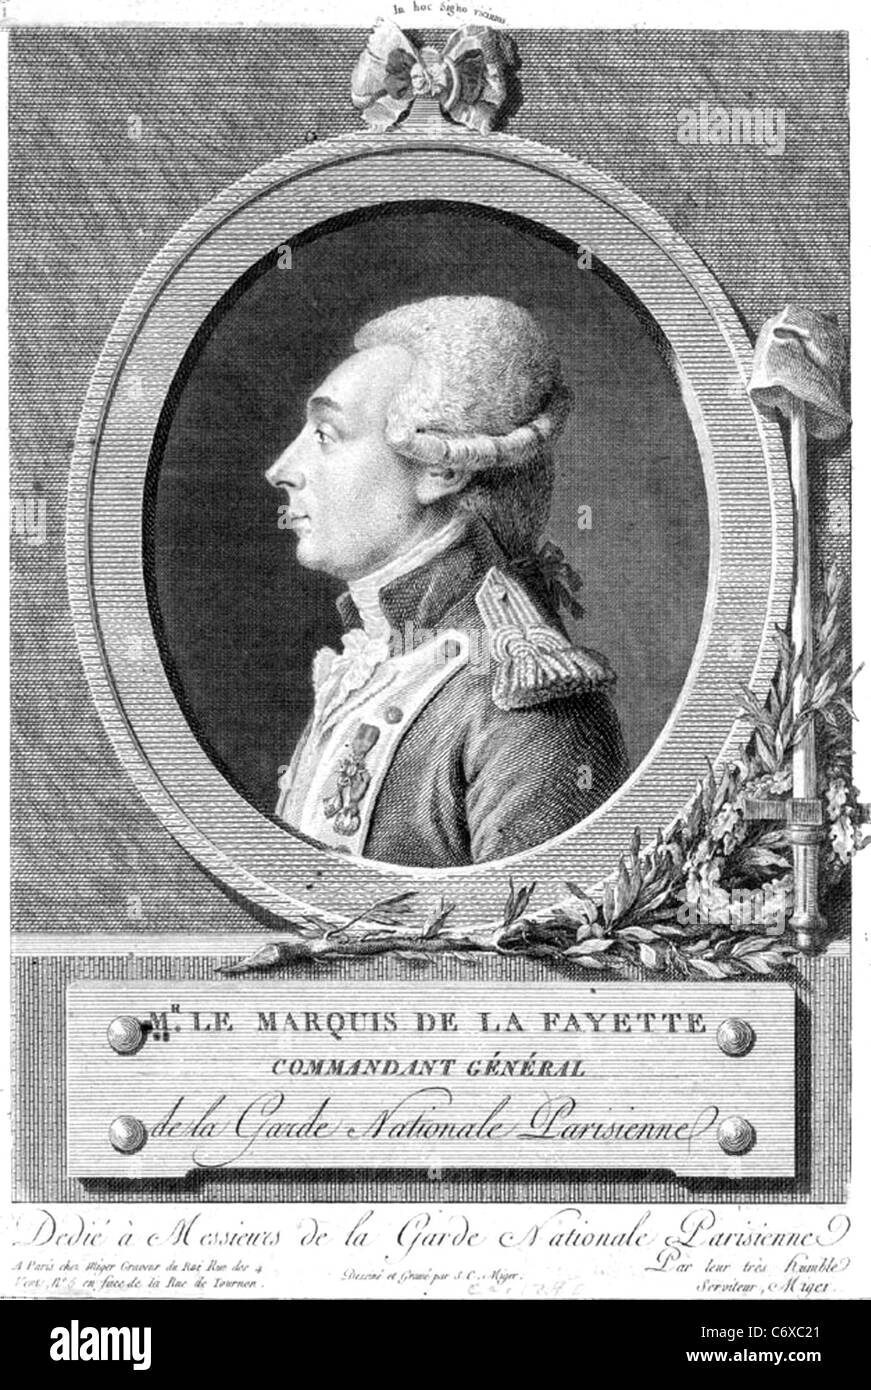 MARQUIS de la FAYETTE (1757-1834) French aristocrat and soldier - Stock Image